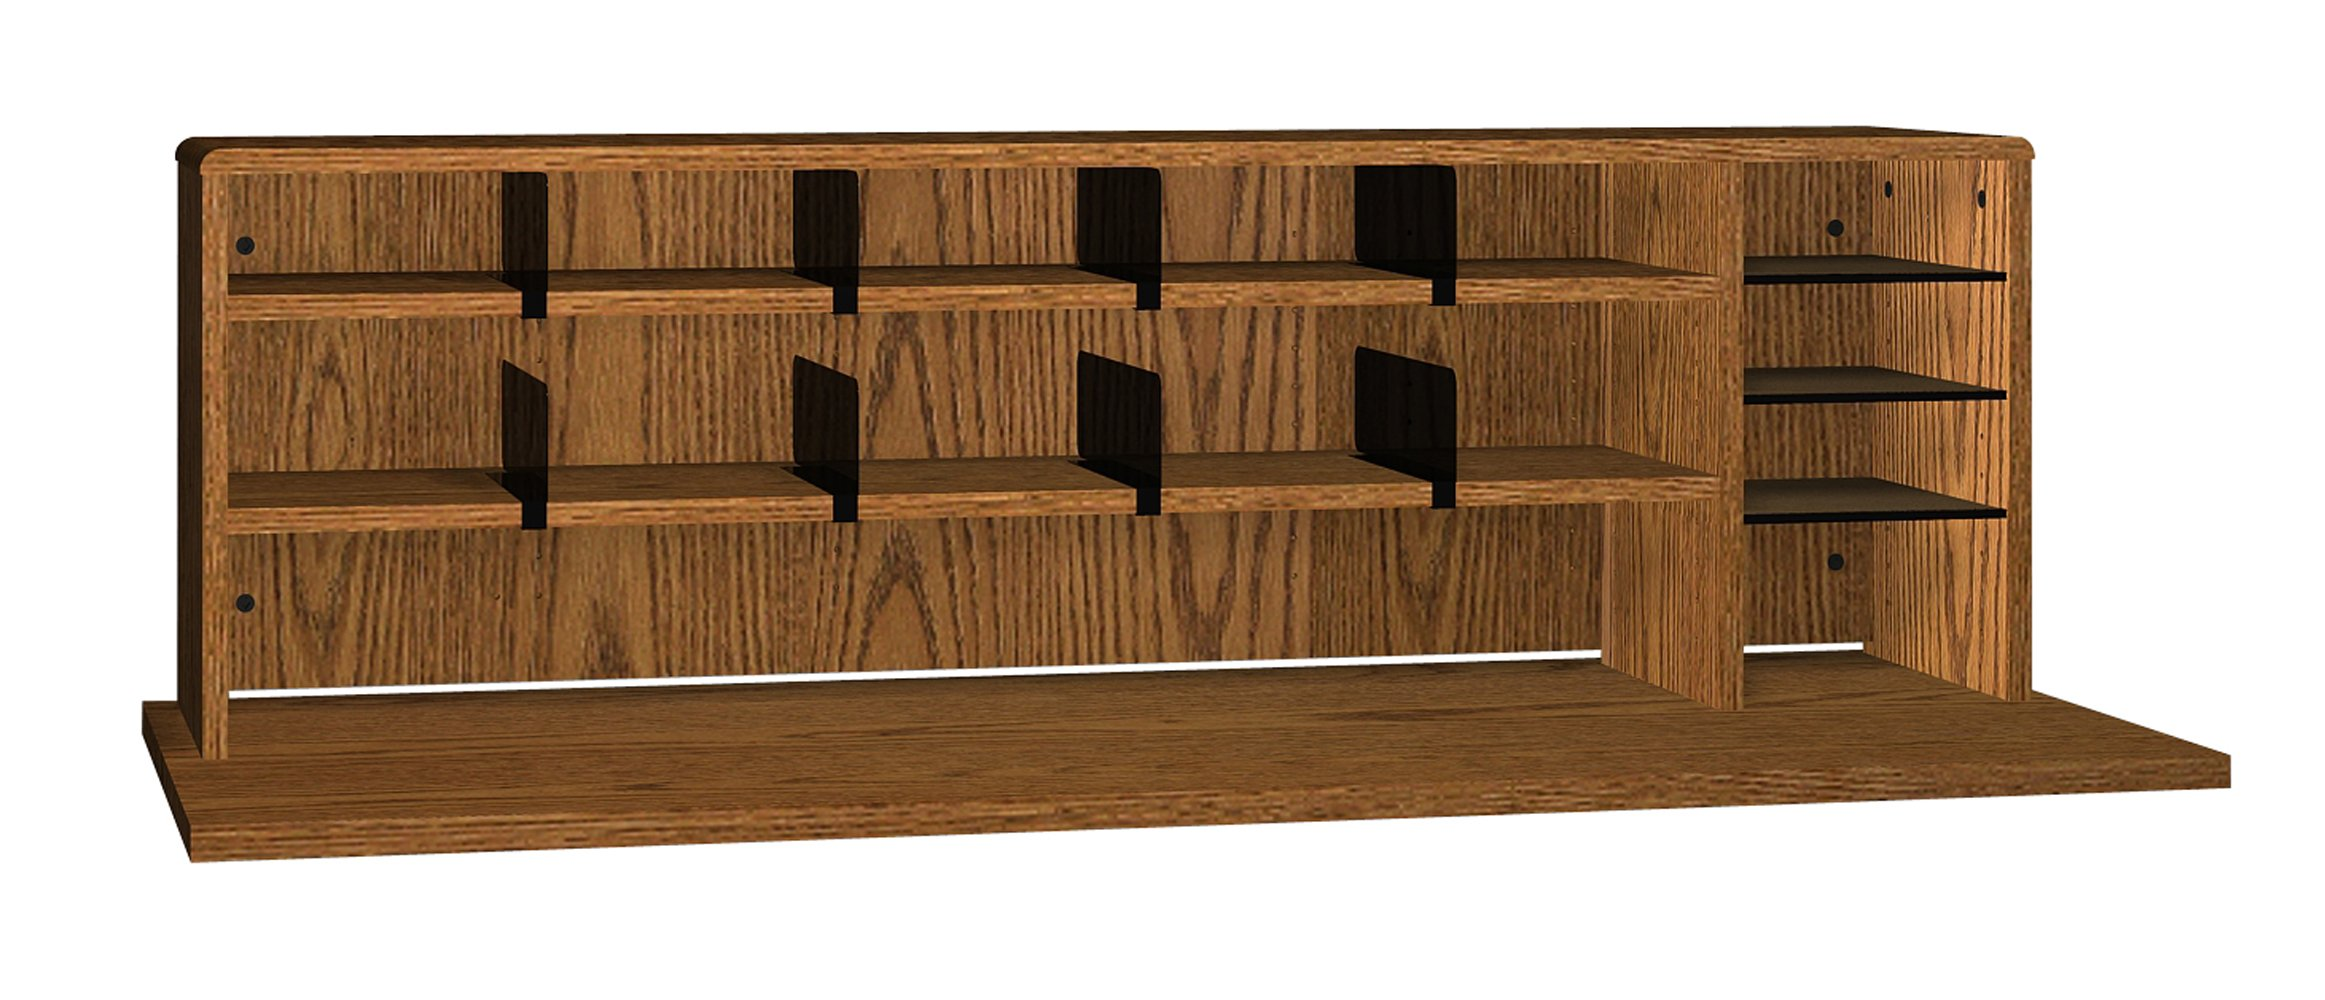 Ironwood High Capacity Desk Top Organizer, Dixie Oak (DTOHCDO)